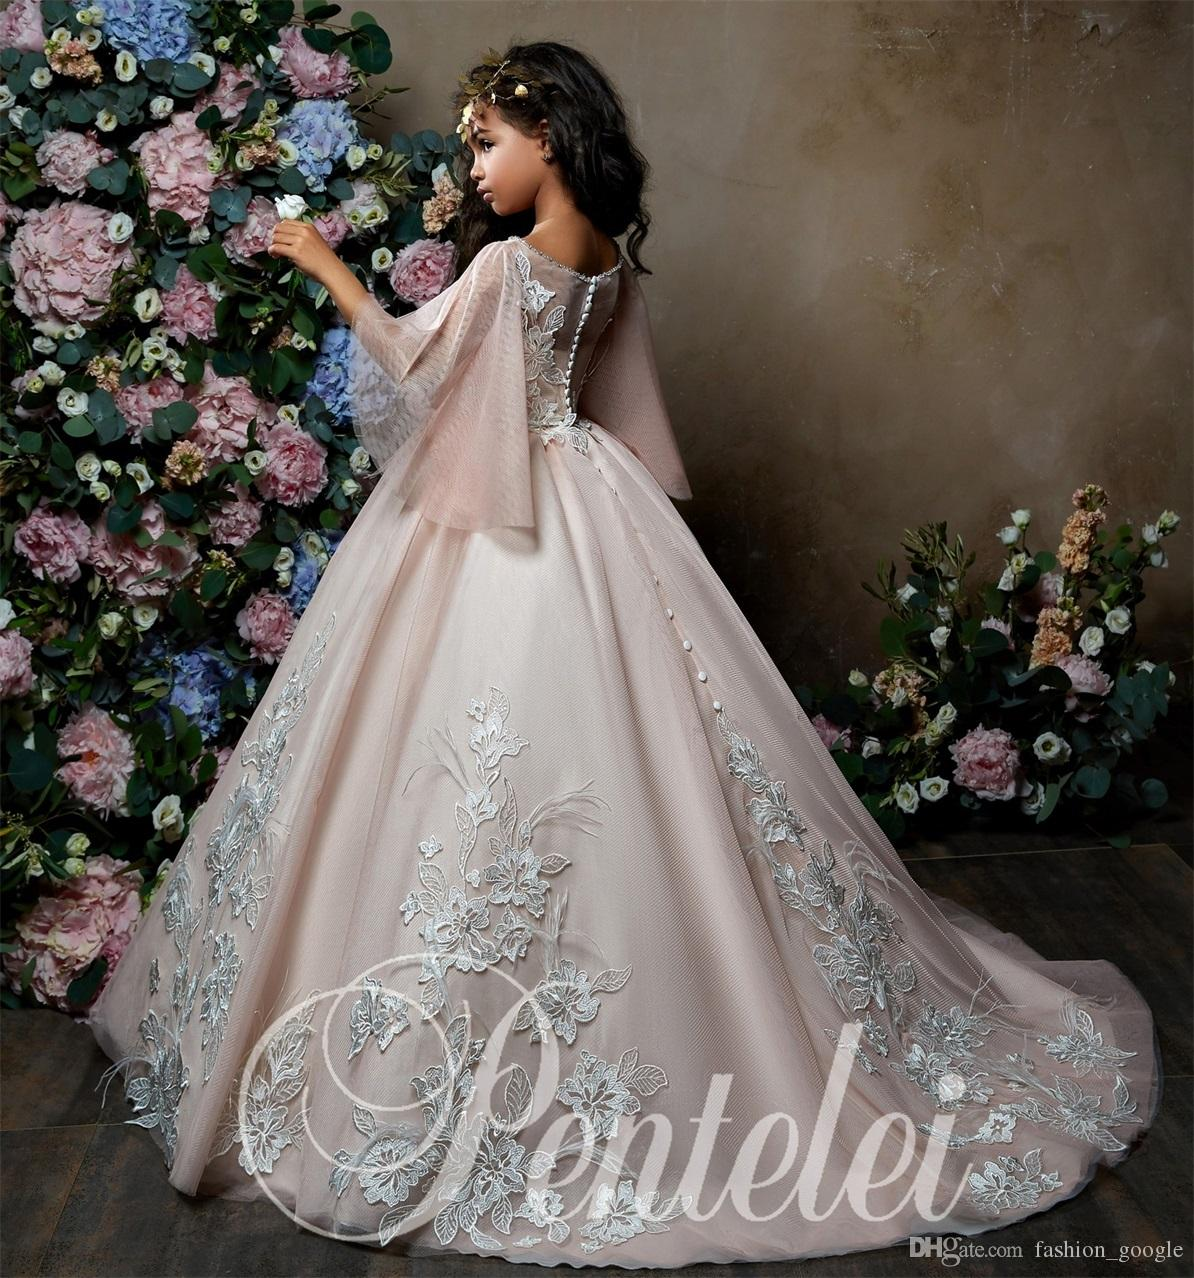 95d0c61f6 Princess Flower Girls Dresses 2018 Bell Sleeves Lace Appliques Ballgown  First Communion Dress For Little Girl Sweep Train Sashes For Flower Girl  Dresses ...